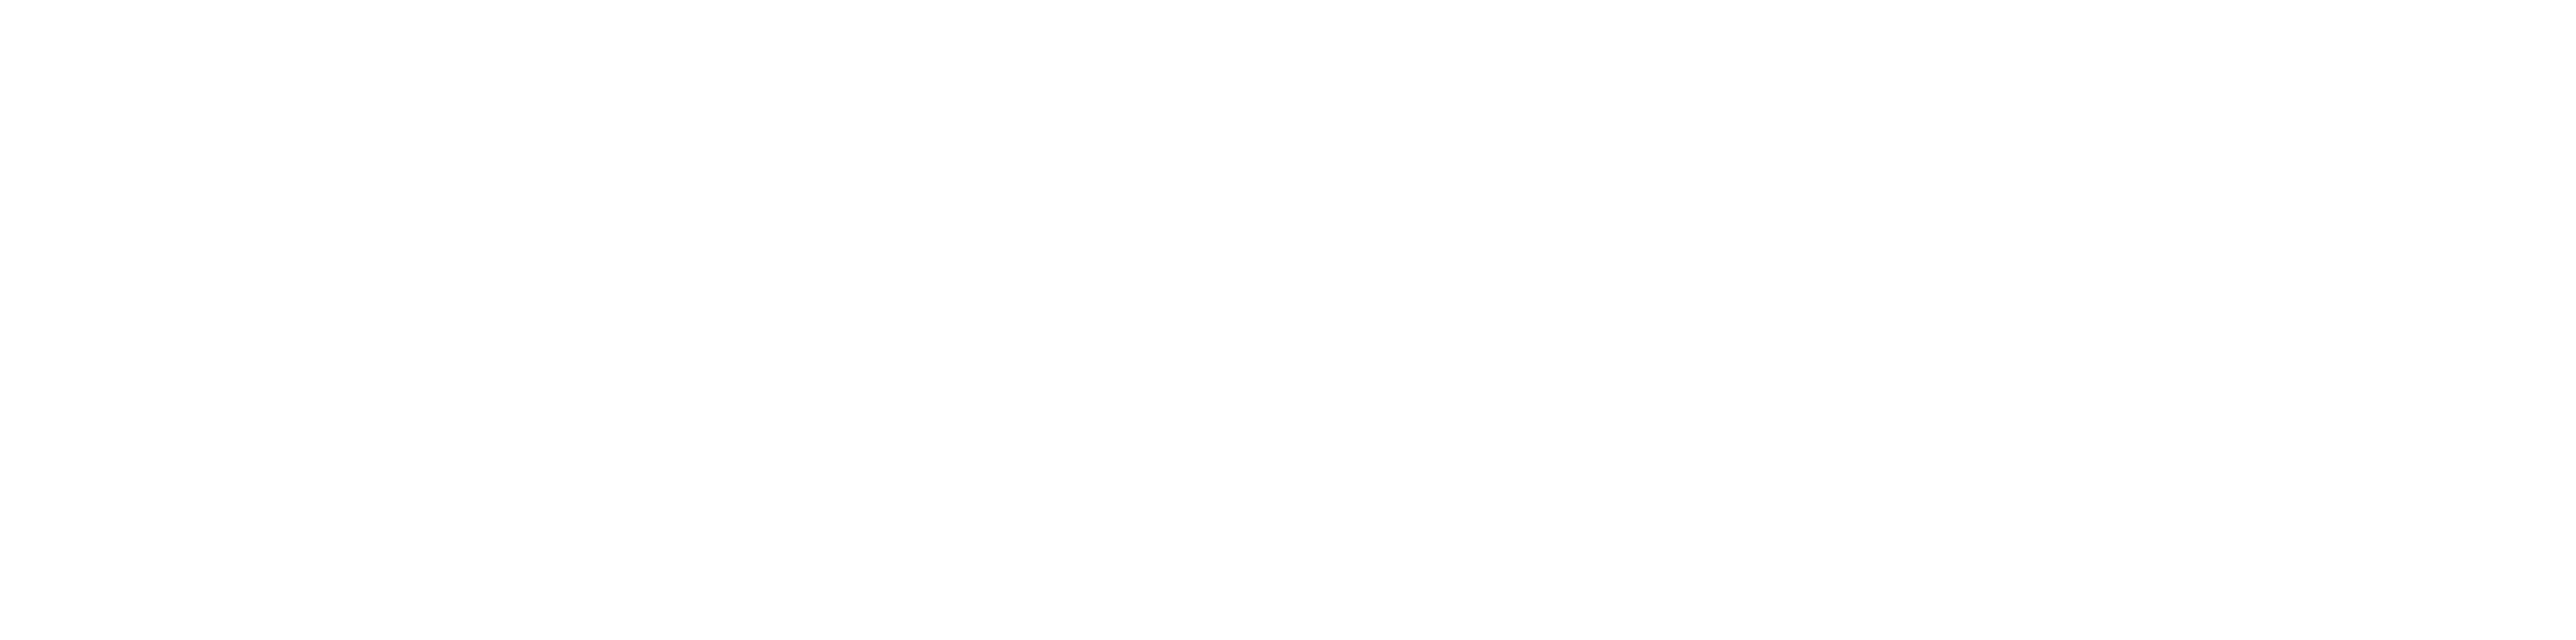 mortadelia logotipo